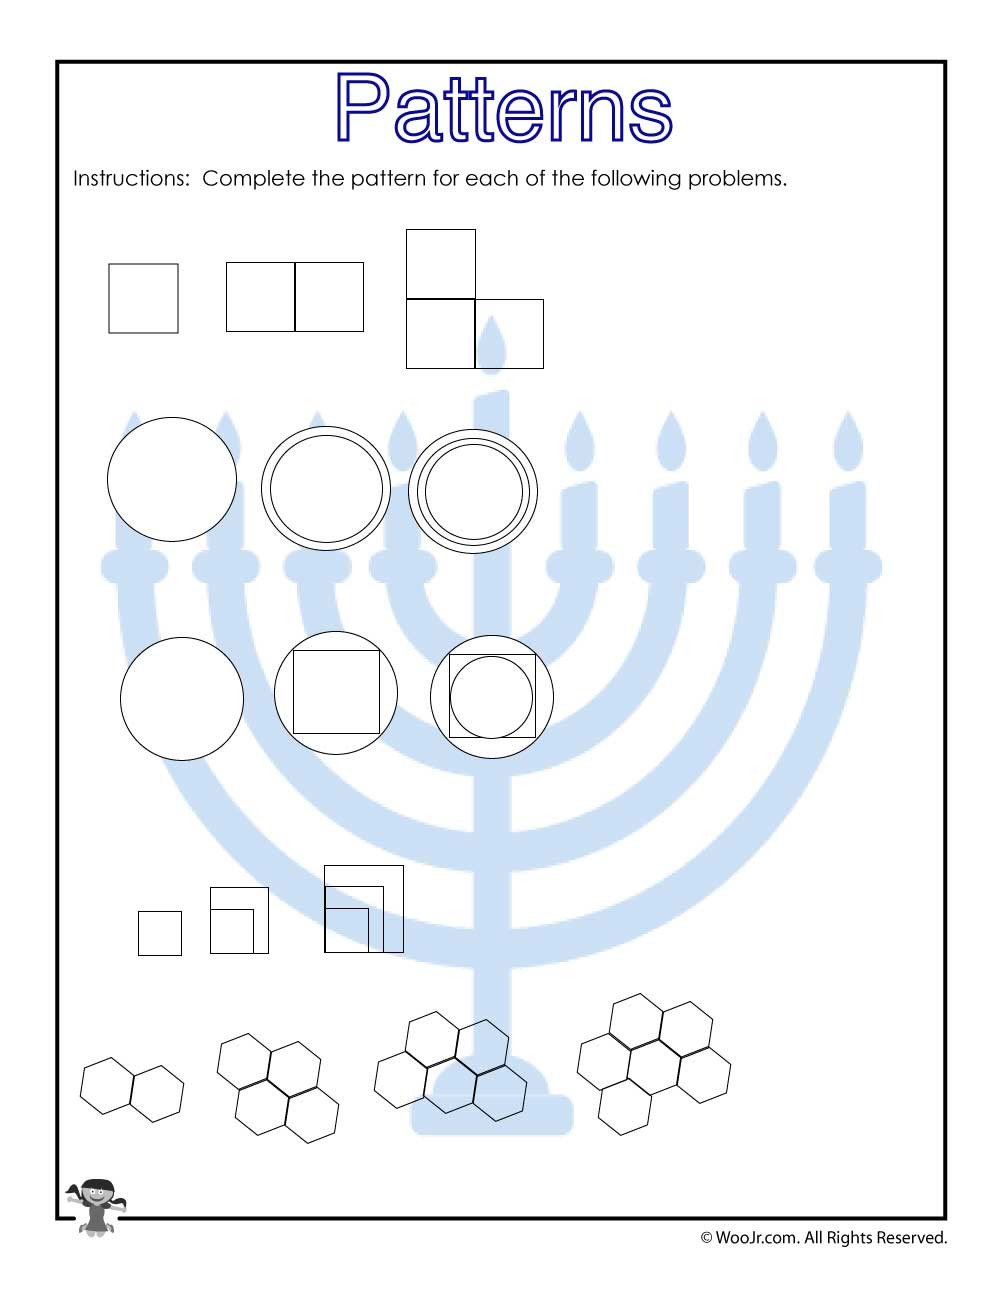 Prediction Worksheets 3rd Grade Visual Pattern Prediction Worksheet for 3rd Grade